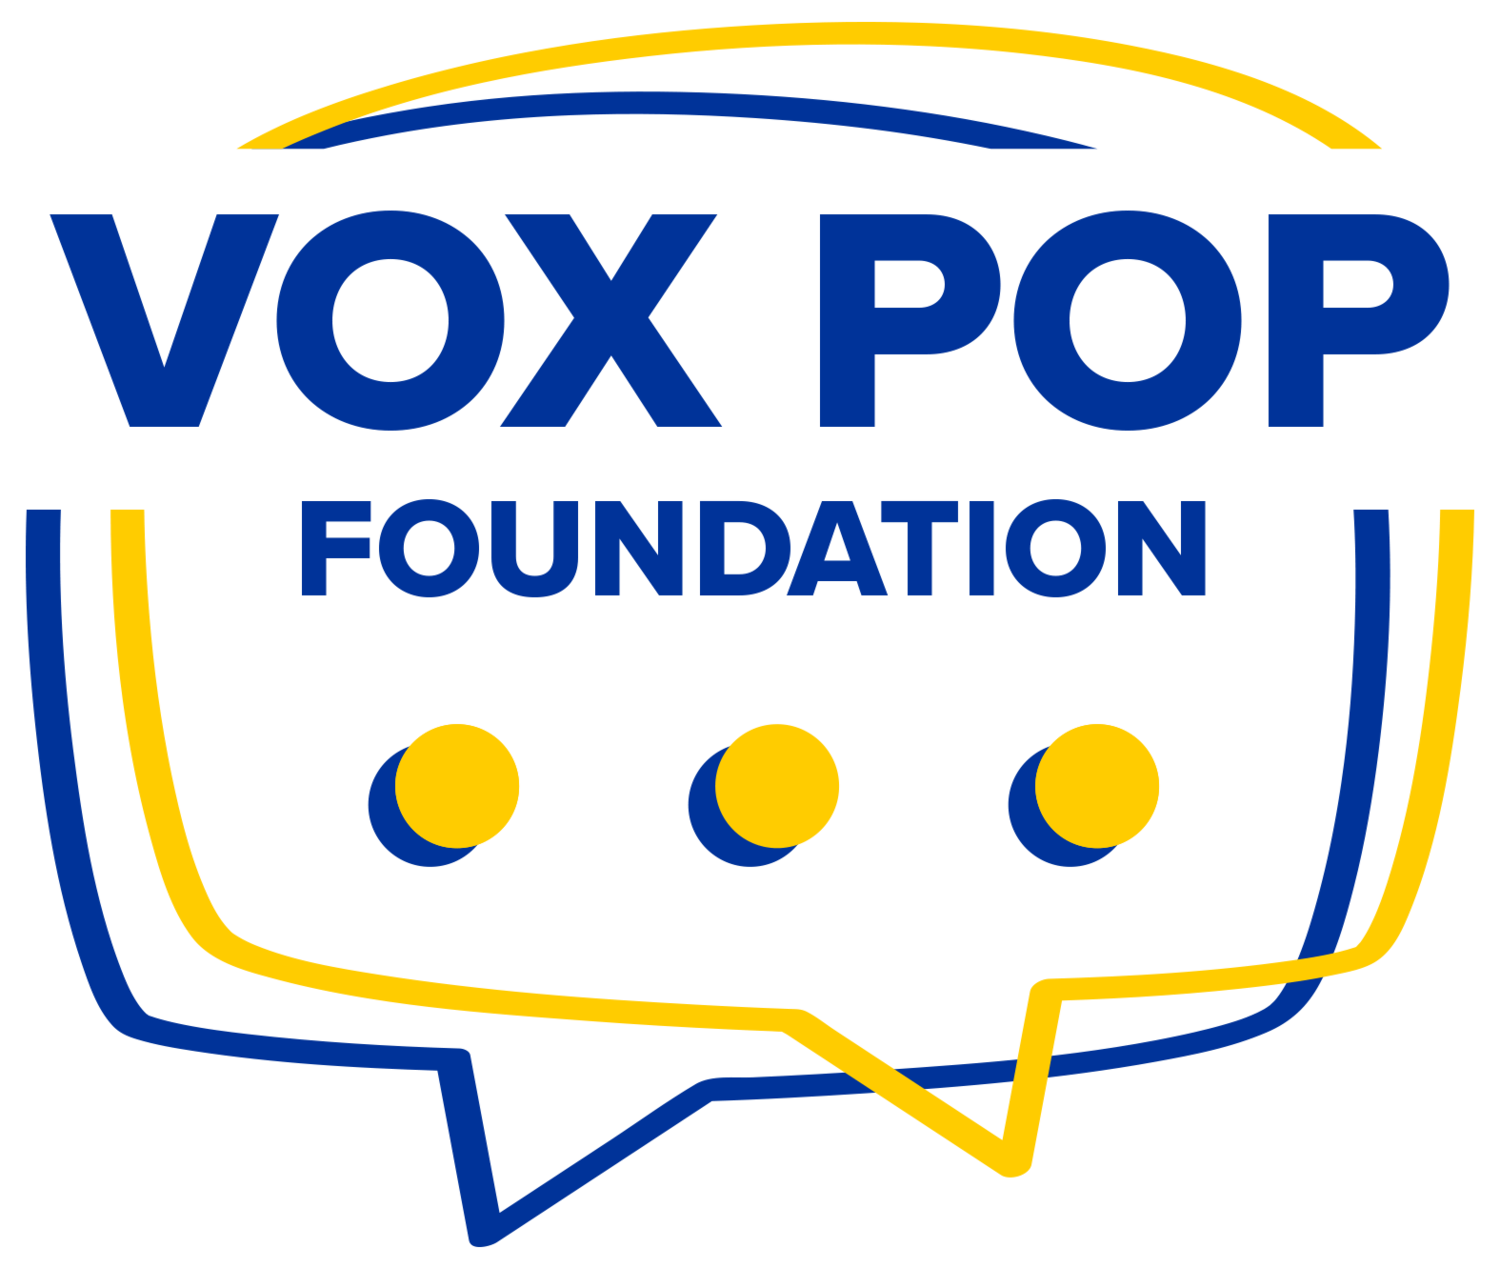 Vox Pop Foundation